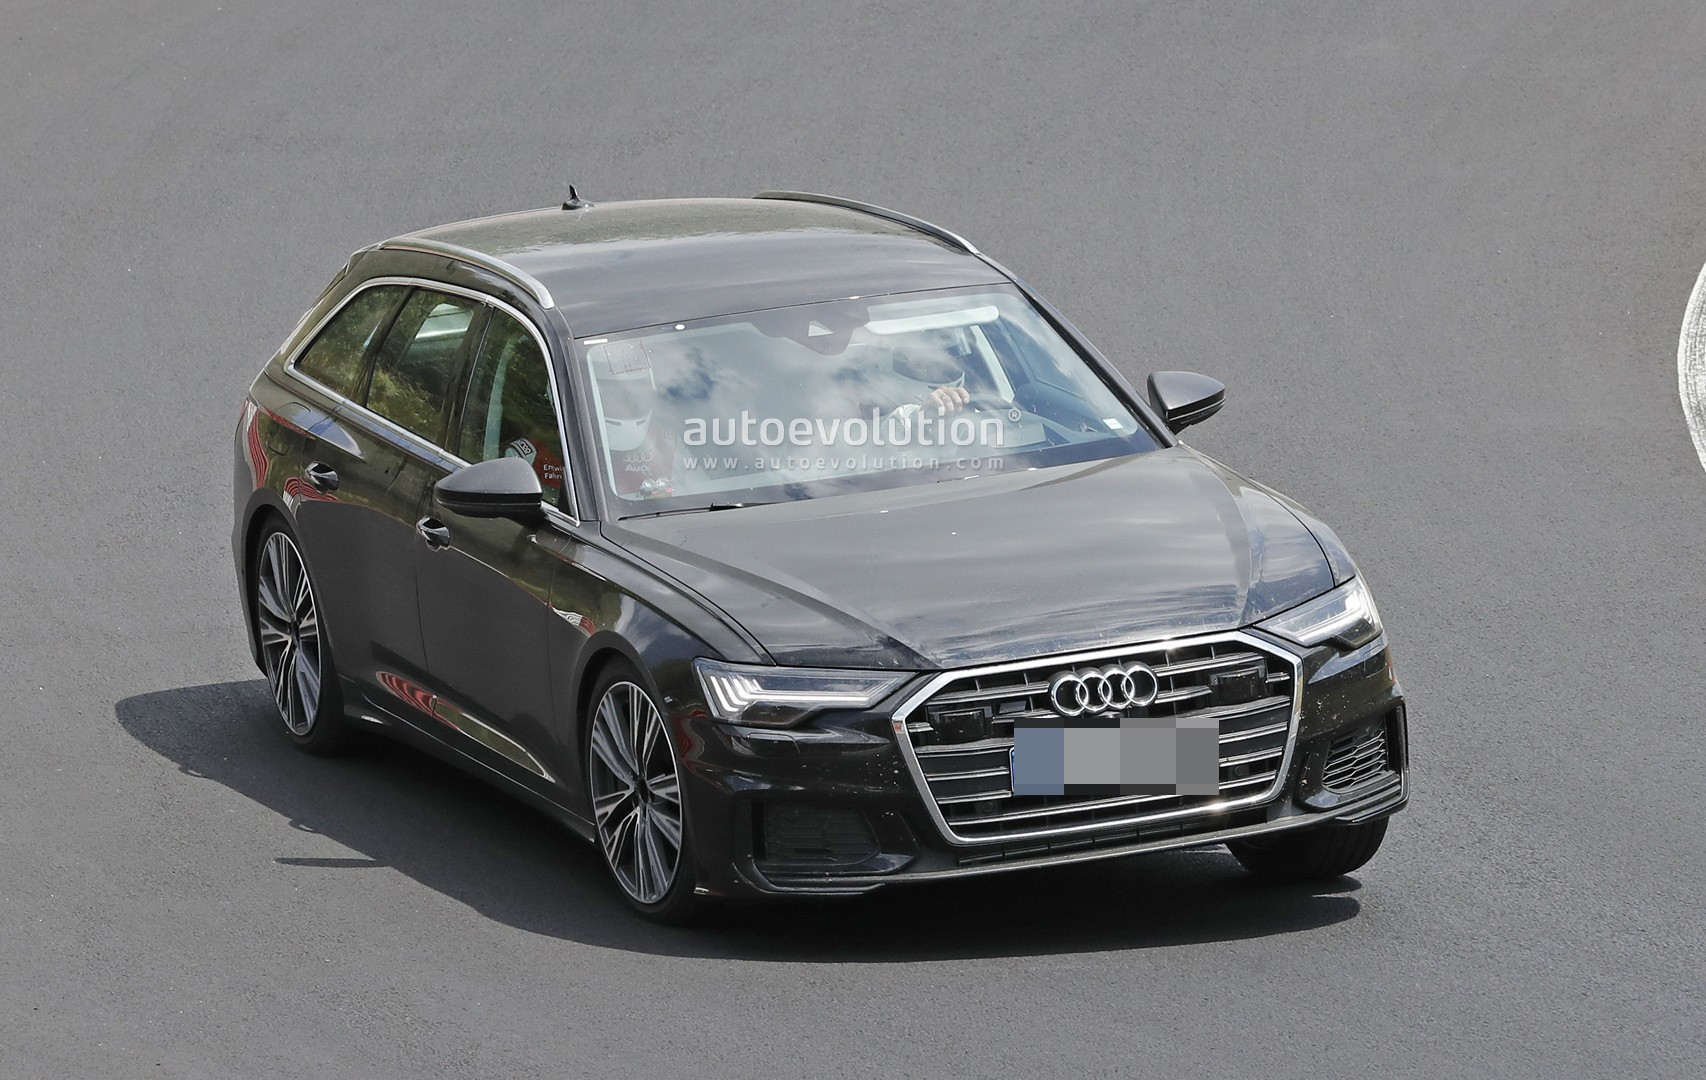 Zac Efron's Surprisingly Choice: an Audi S6 - autoevolution